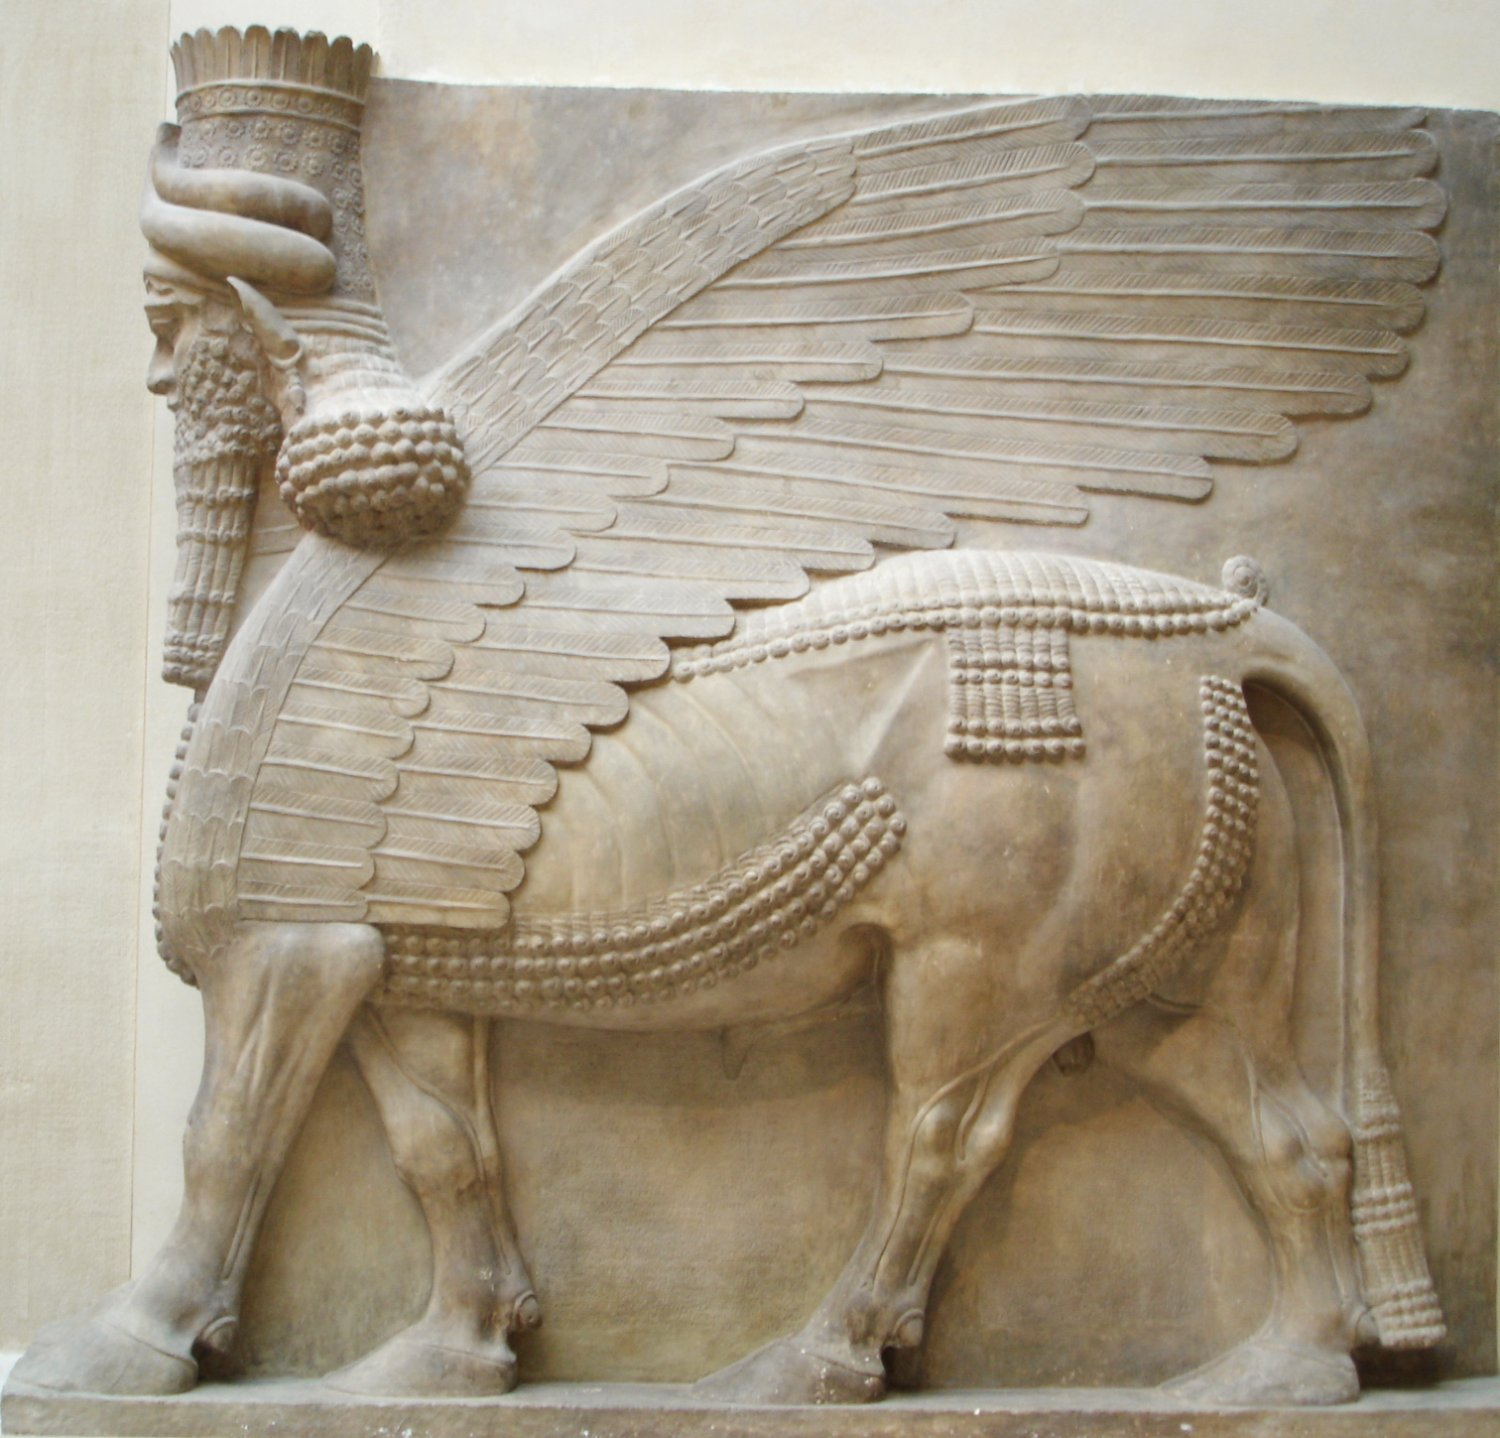 https://upload.wikimedia.org/wikipedia/commons/2/24/Human_headed_winged_bull_profile.jpg